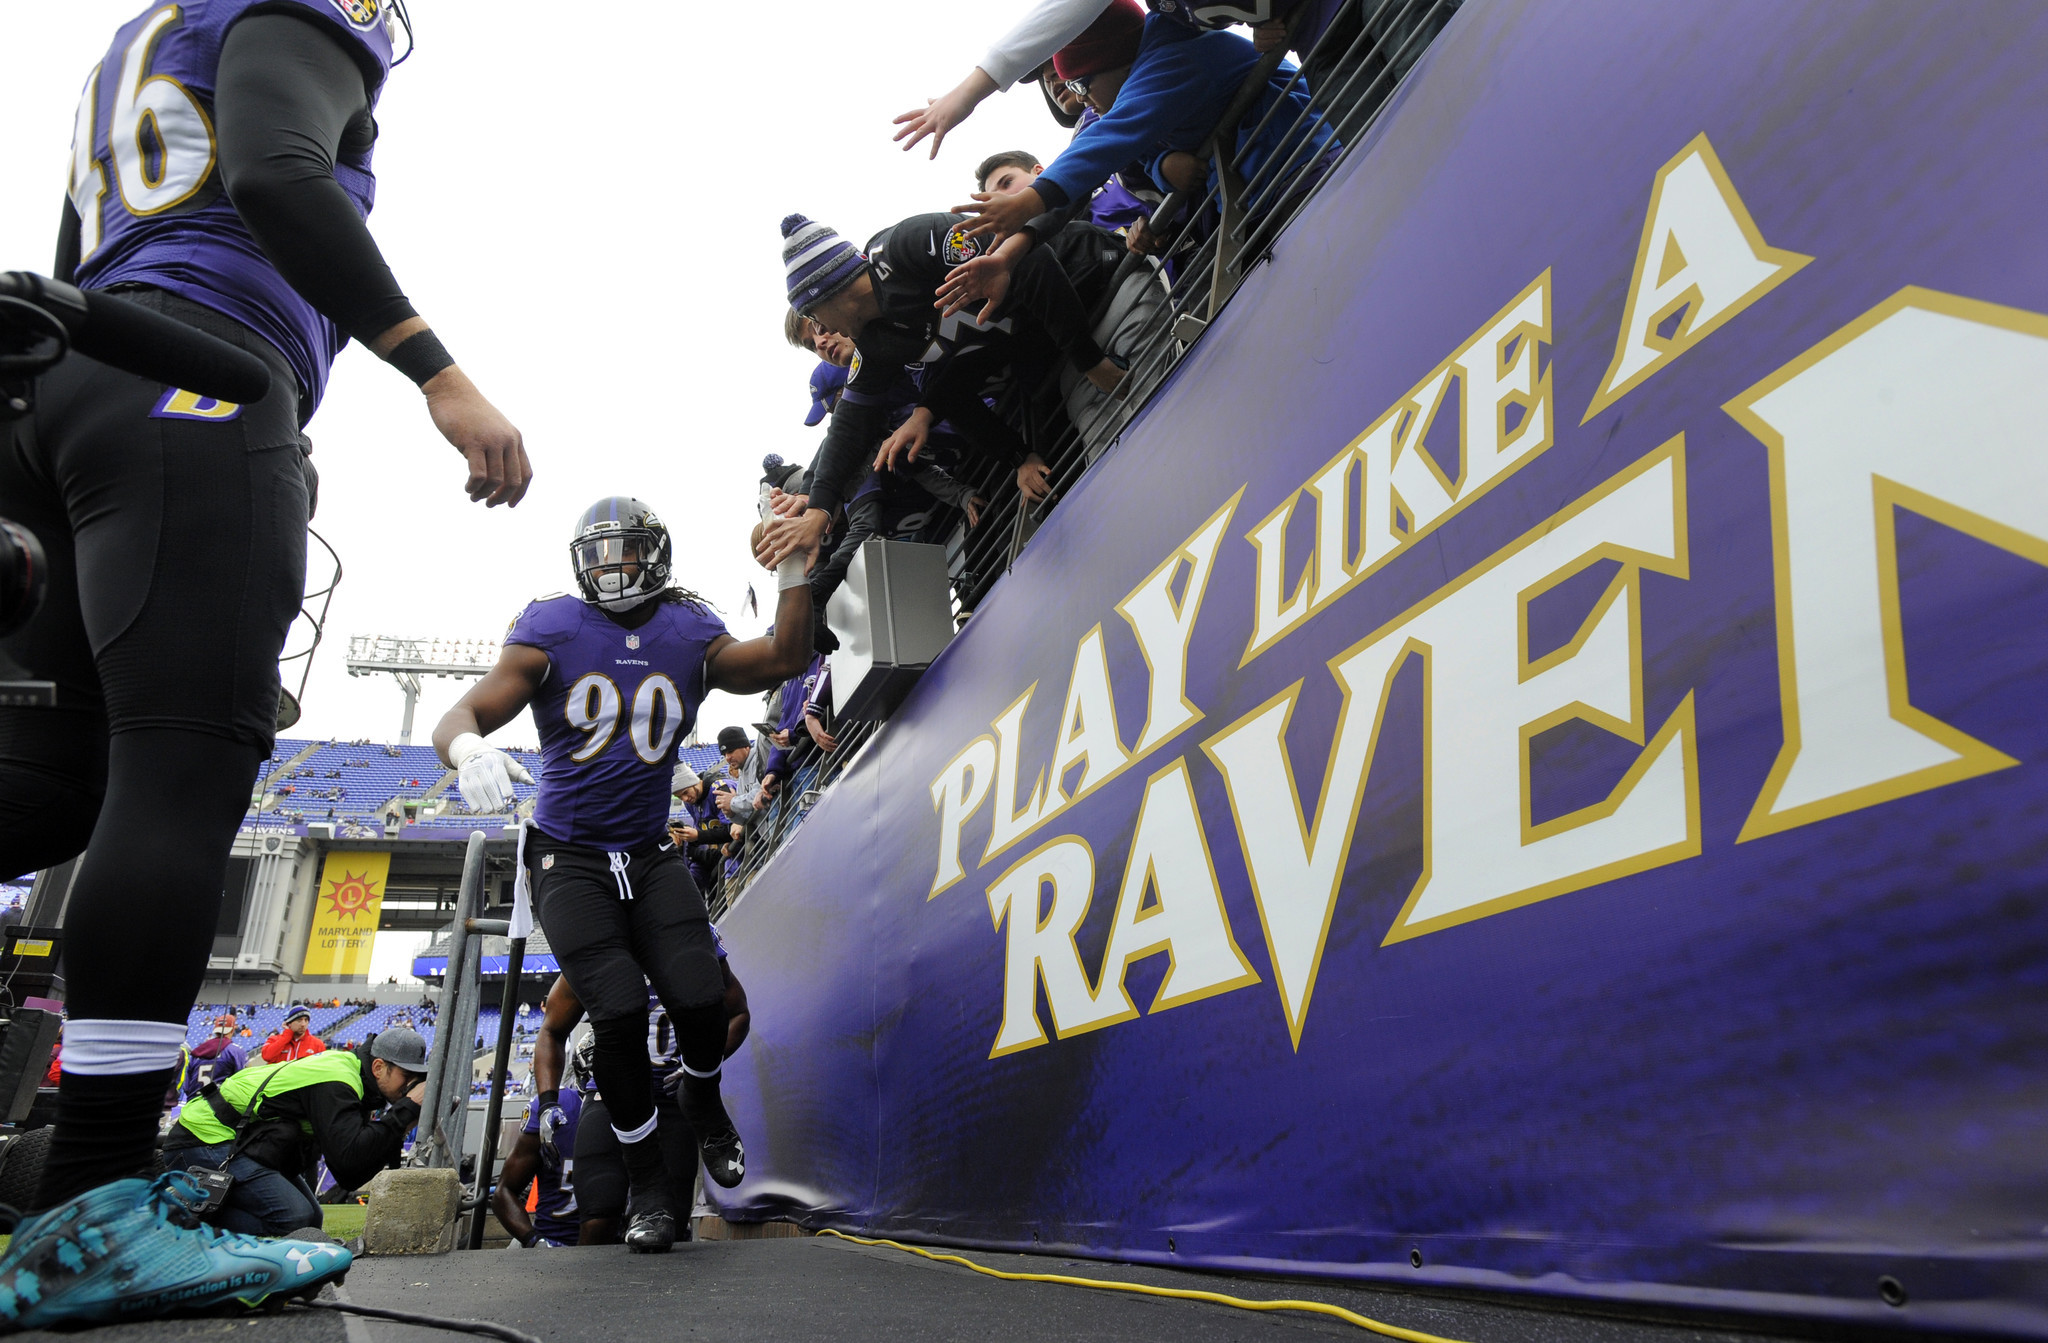 Bal-ravens-news-notes-and-opinions-20170313